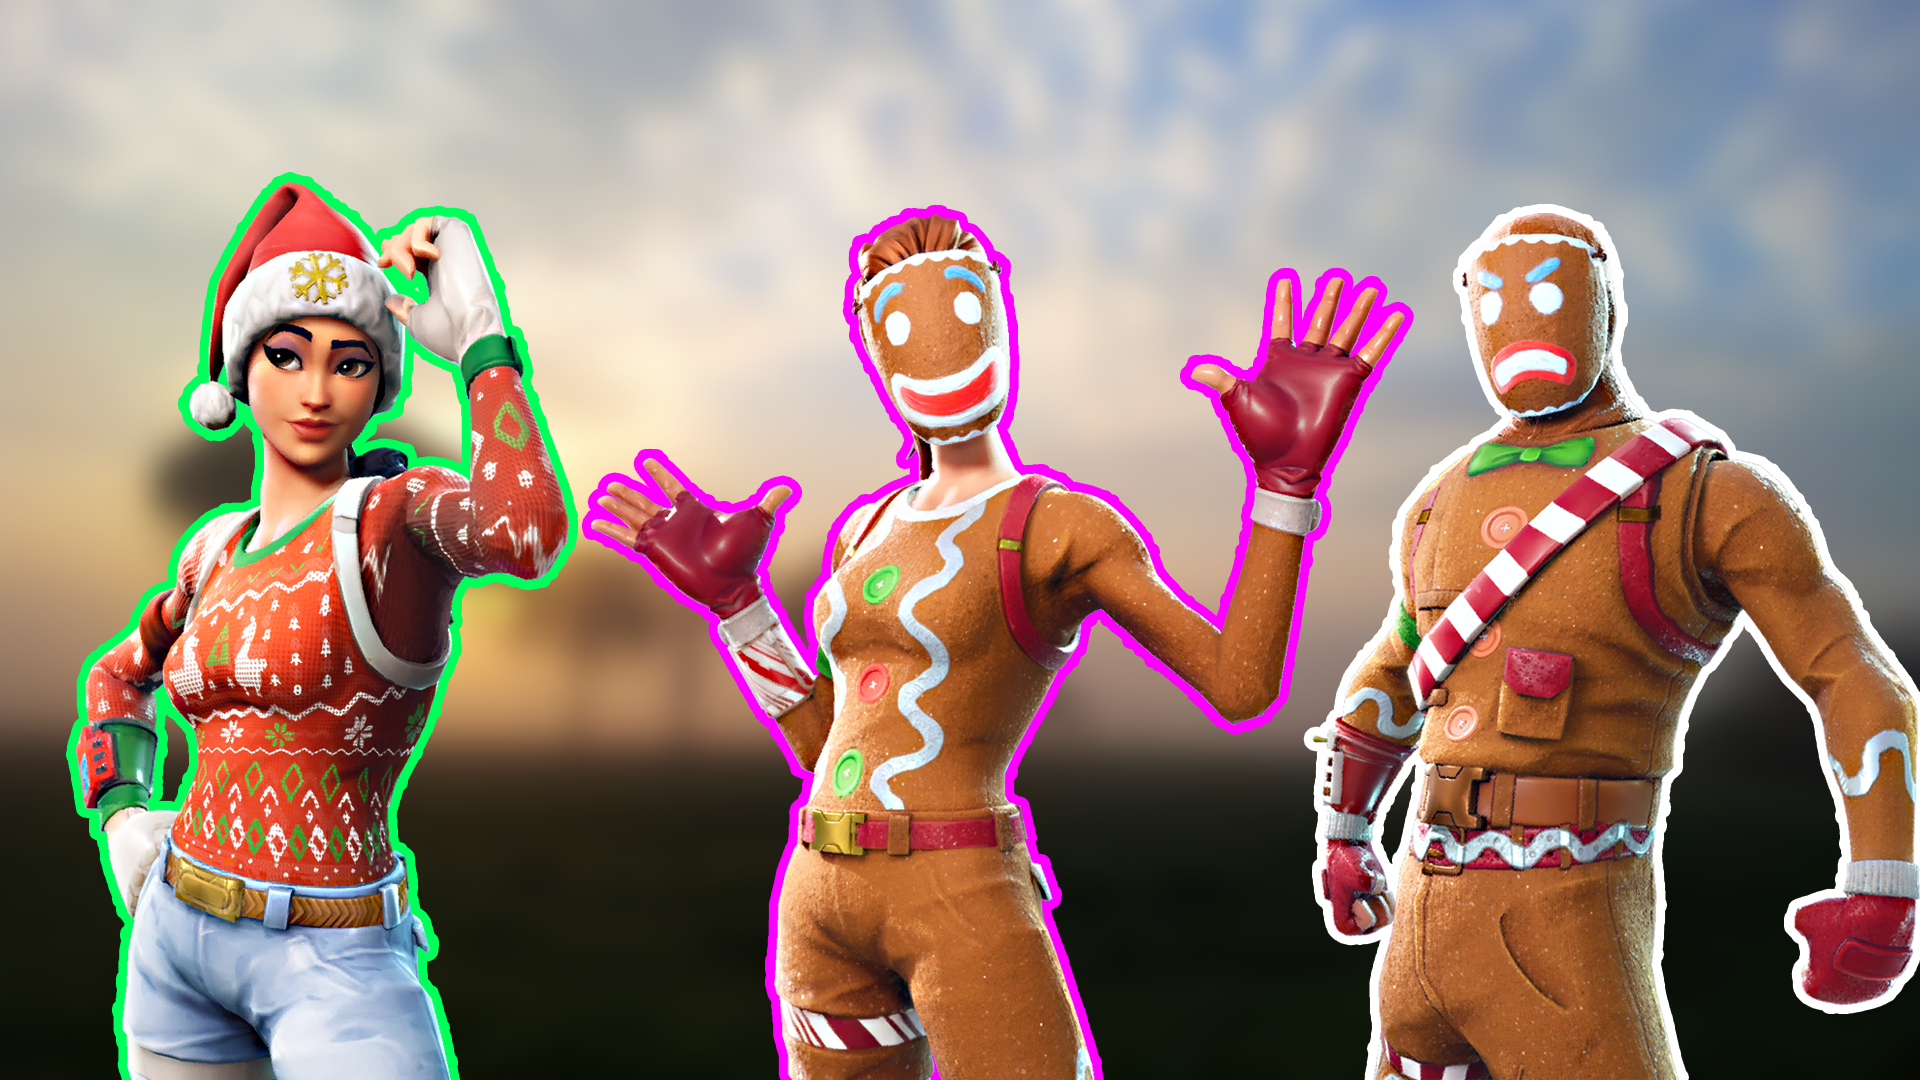 I tried making a wallpaper using some christmas skins FortNiteBR 1920x1080